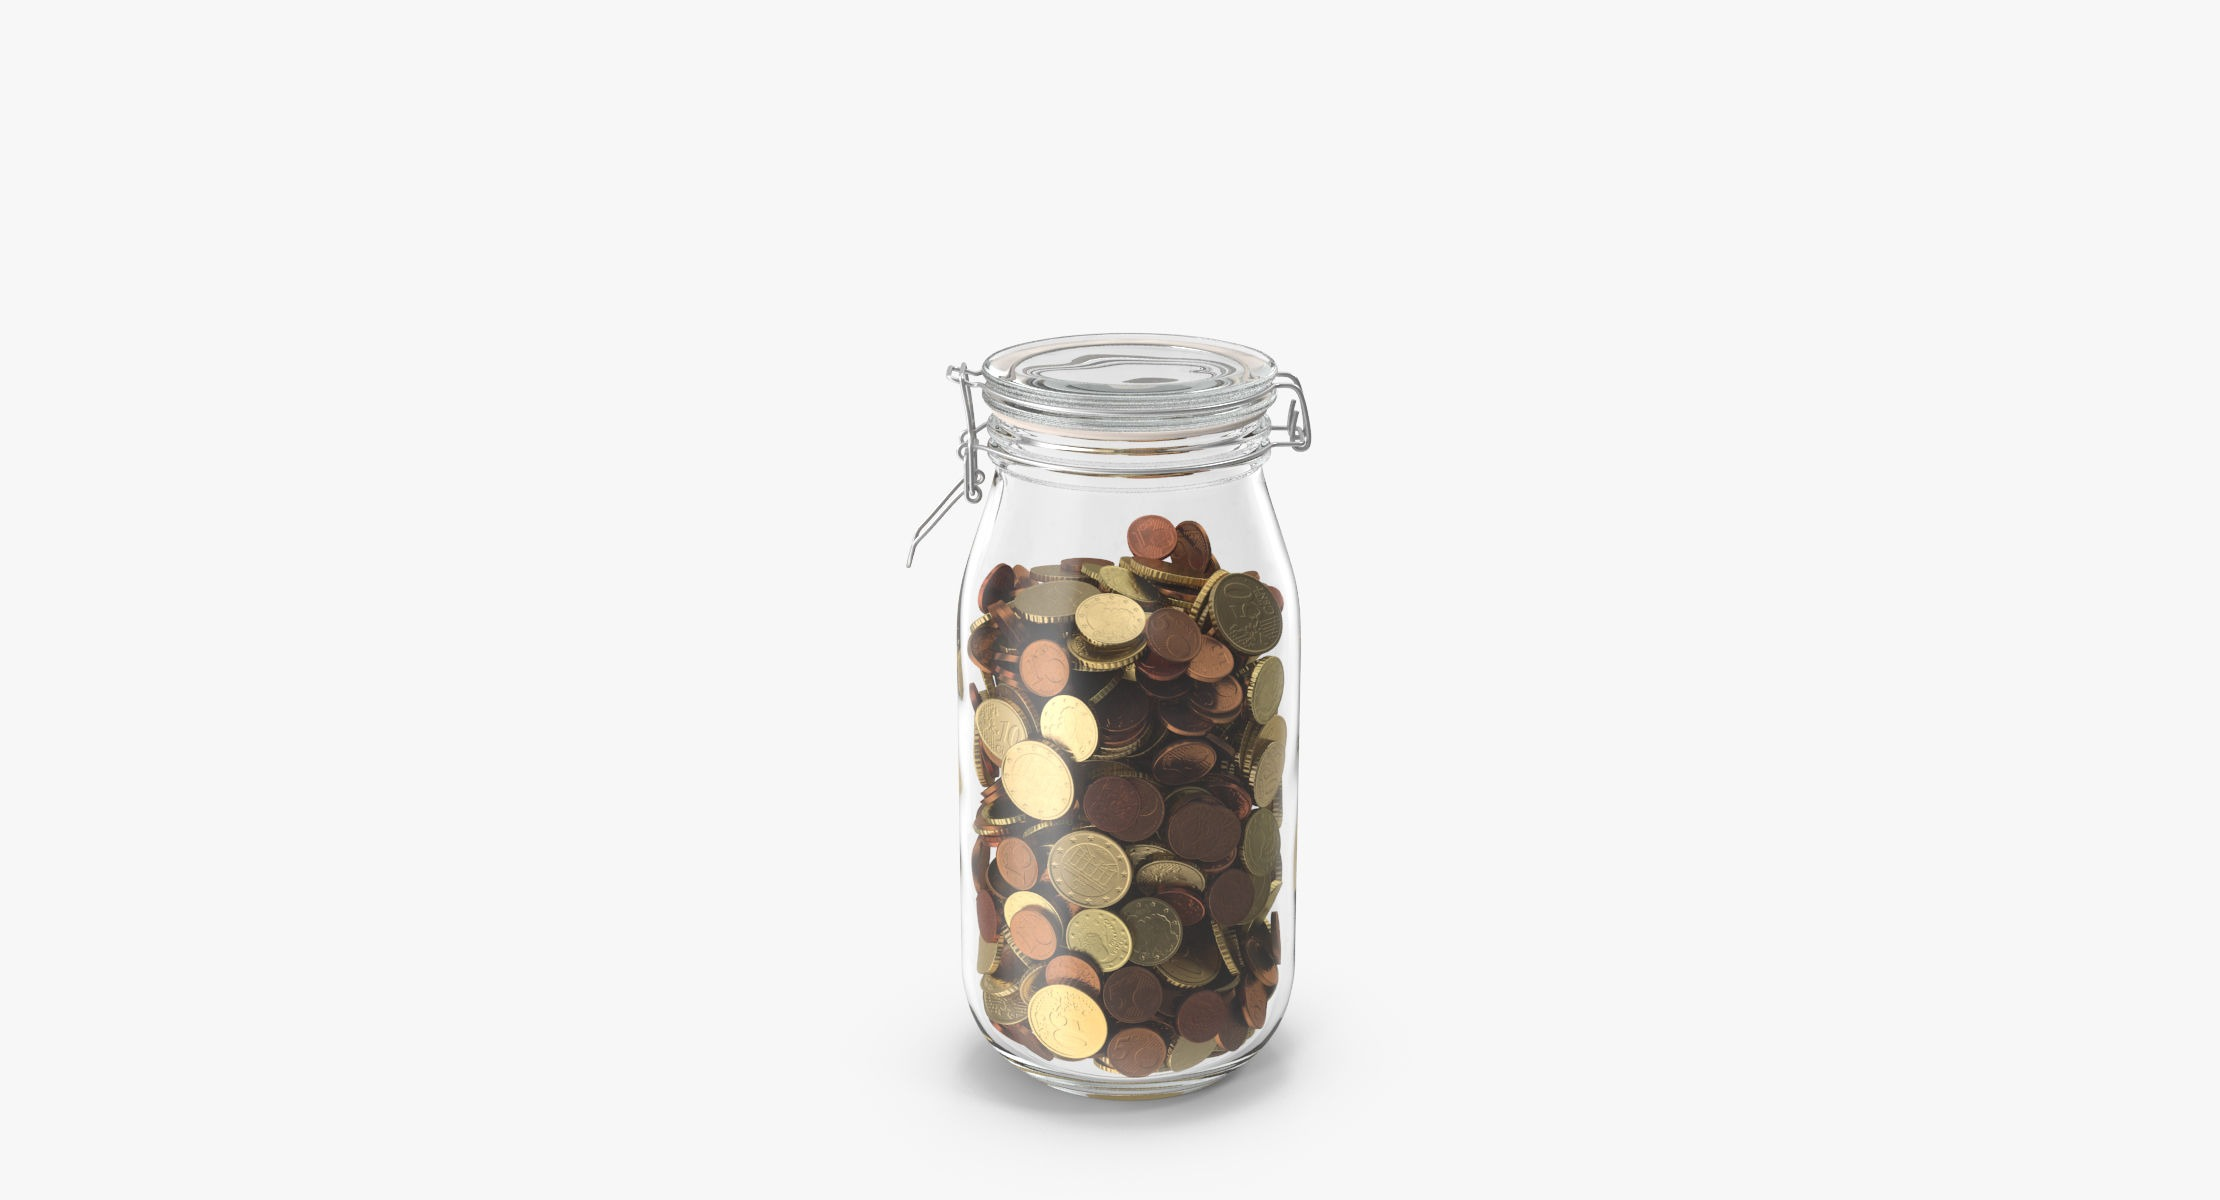 Glass Jar With Currency 02 Euro - reel 2